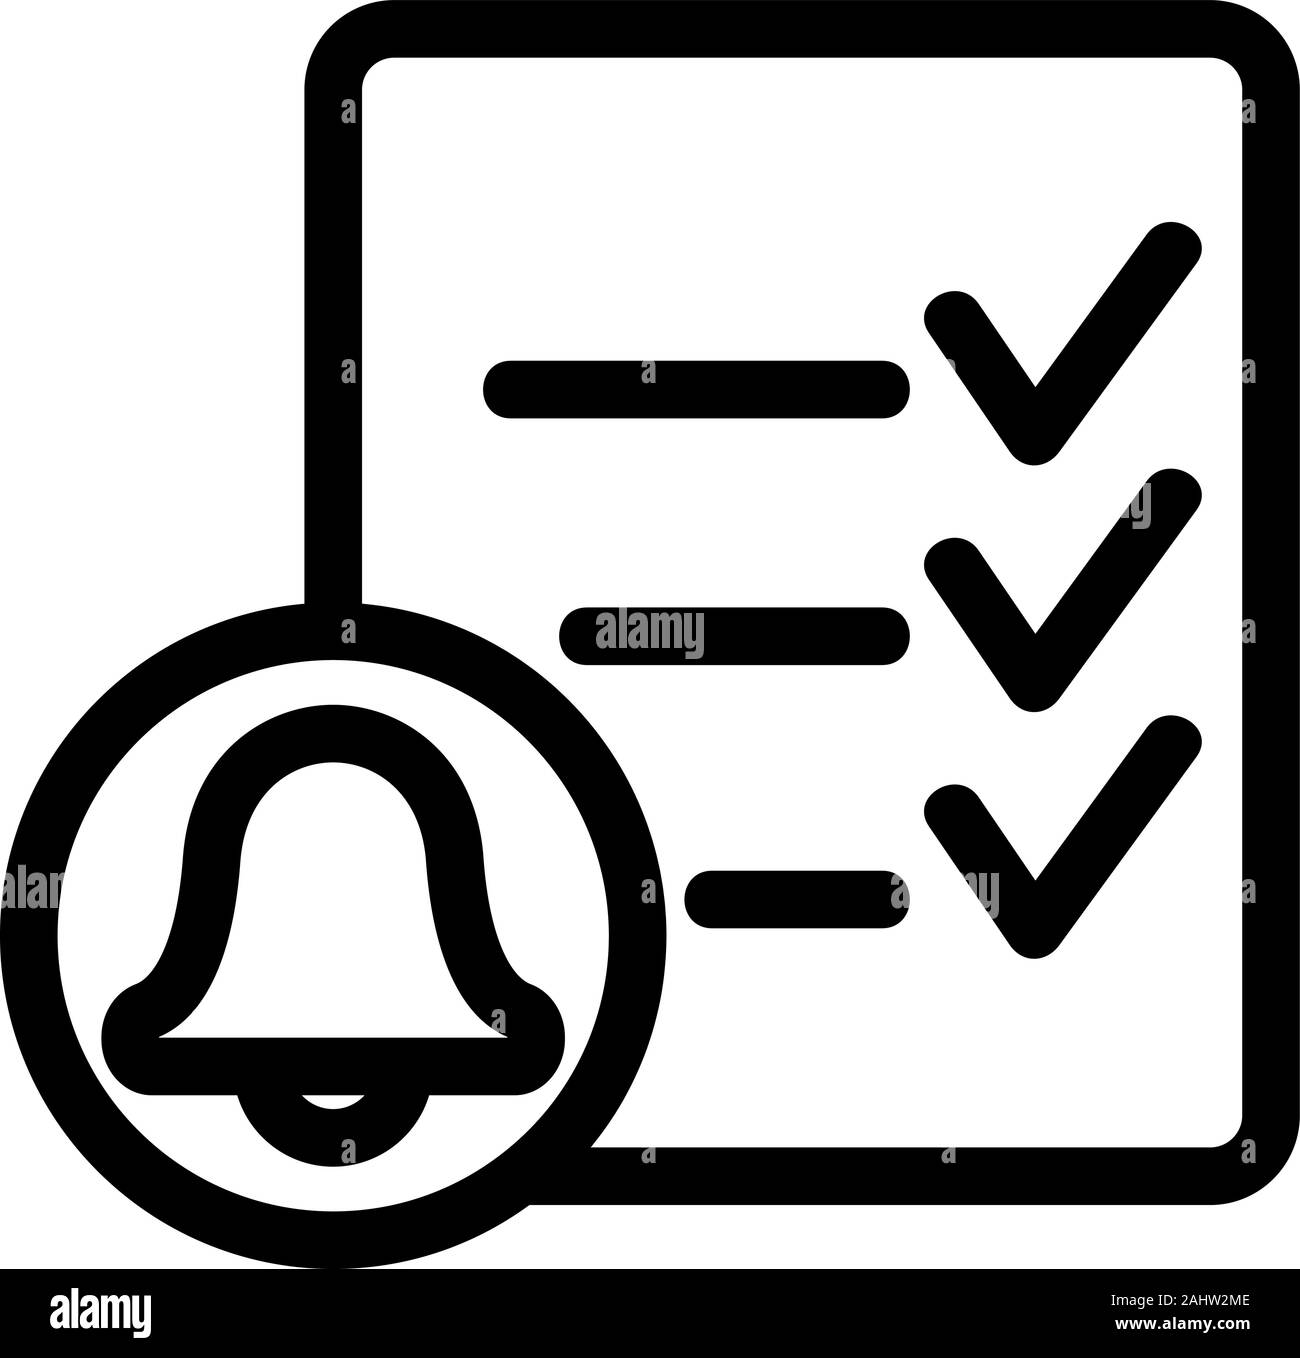 reminder icon vector isolated contour symbol illustration stock vector image art alamy https www alamy com reminder icon vector isolated contour symbol illustration image337997086 html